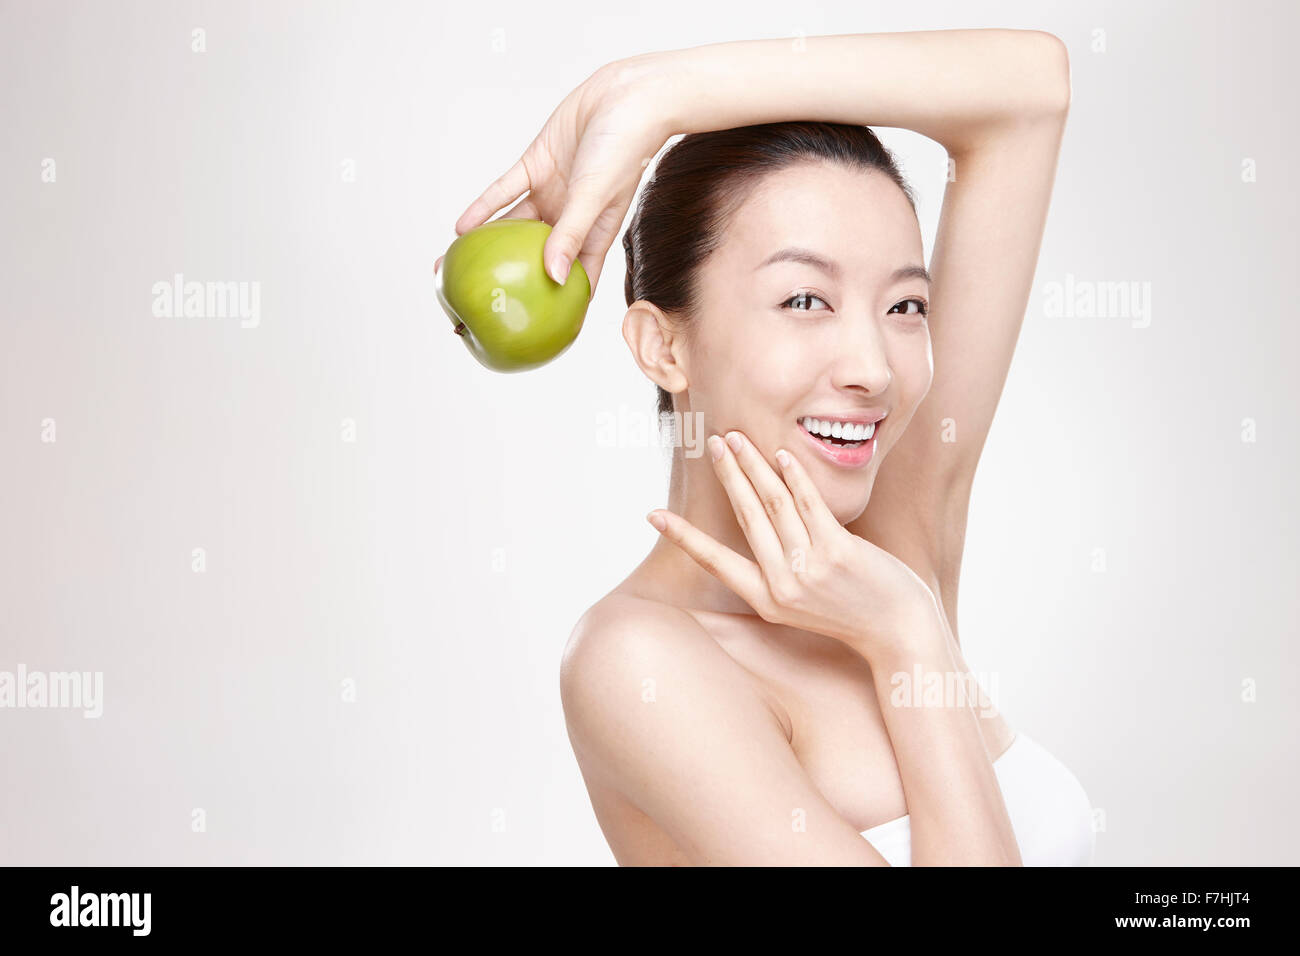 A smiling woman holding a green apple Photo Stock